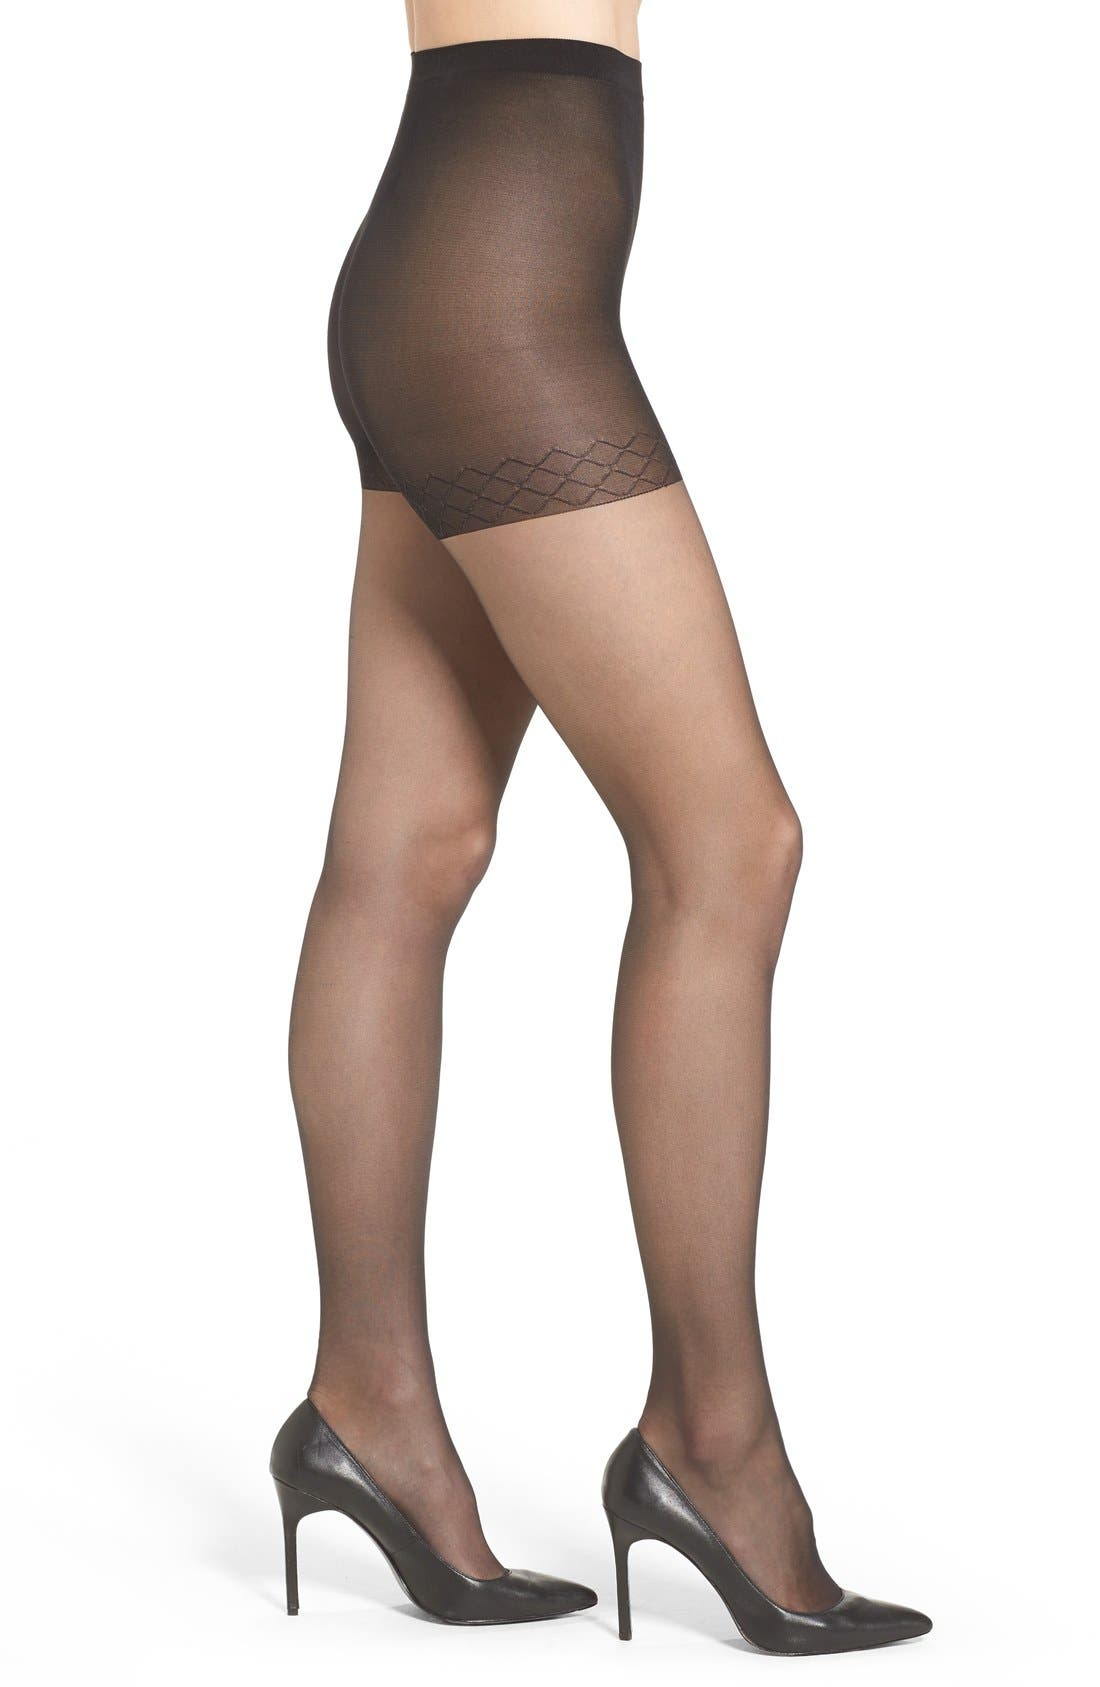 Main Image - Nordstrom Sheer Control Top Pantyhose